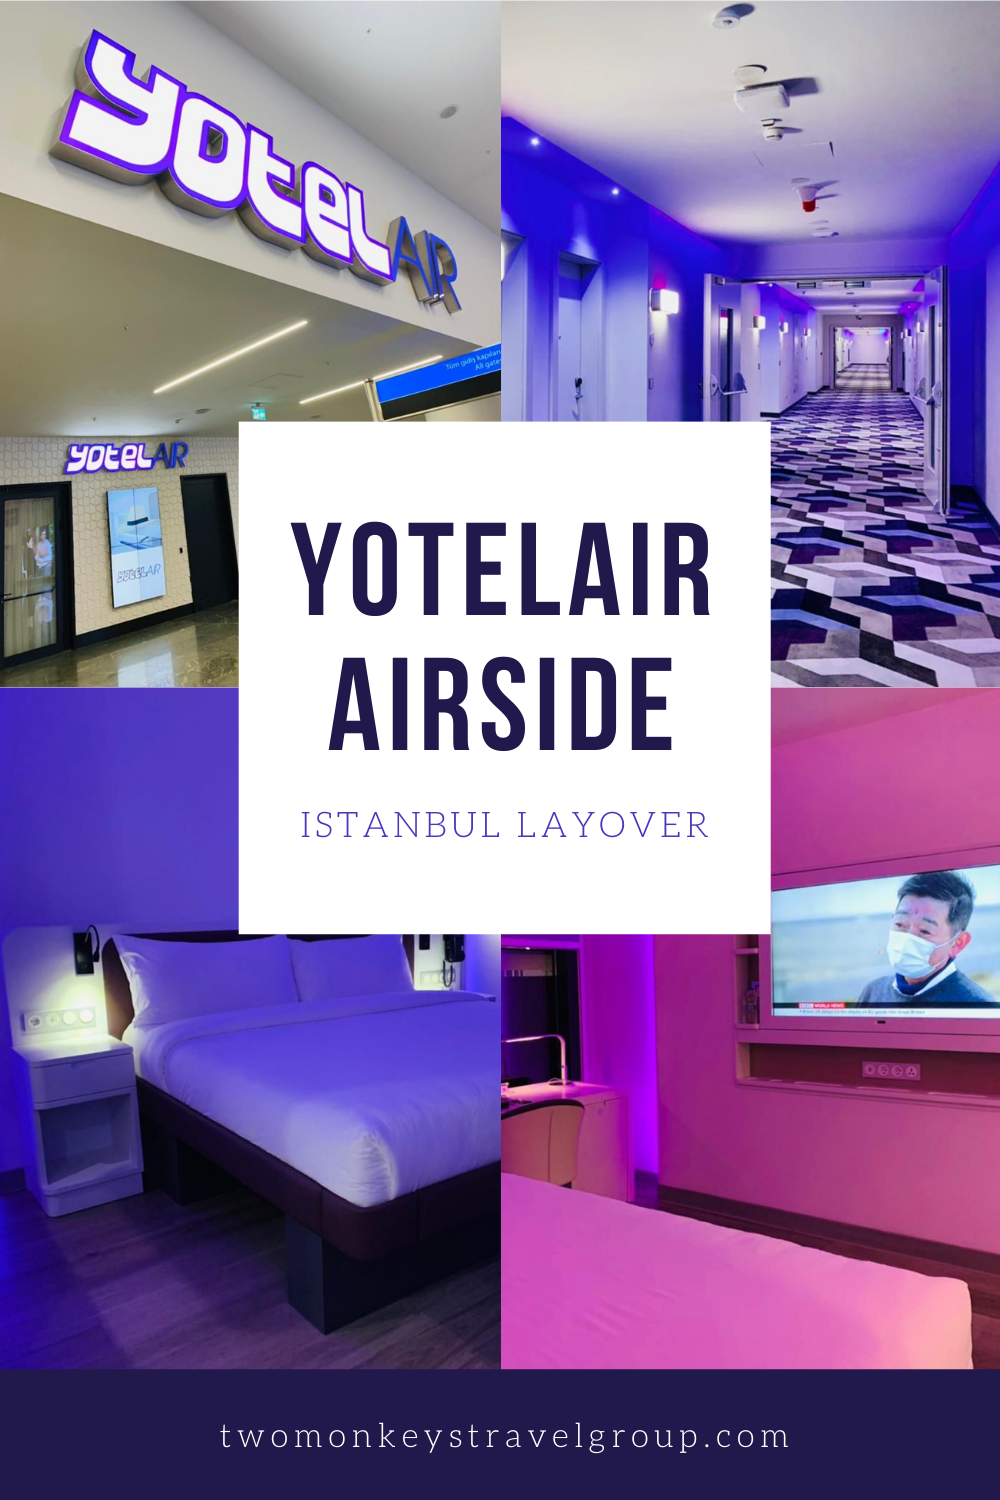 YOTELAIR Airside - Your Best Choice to Sleep During Your Istanbul Layover